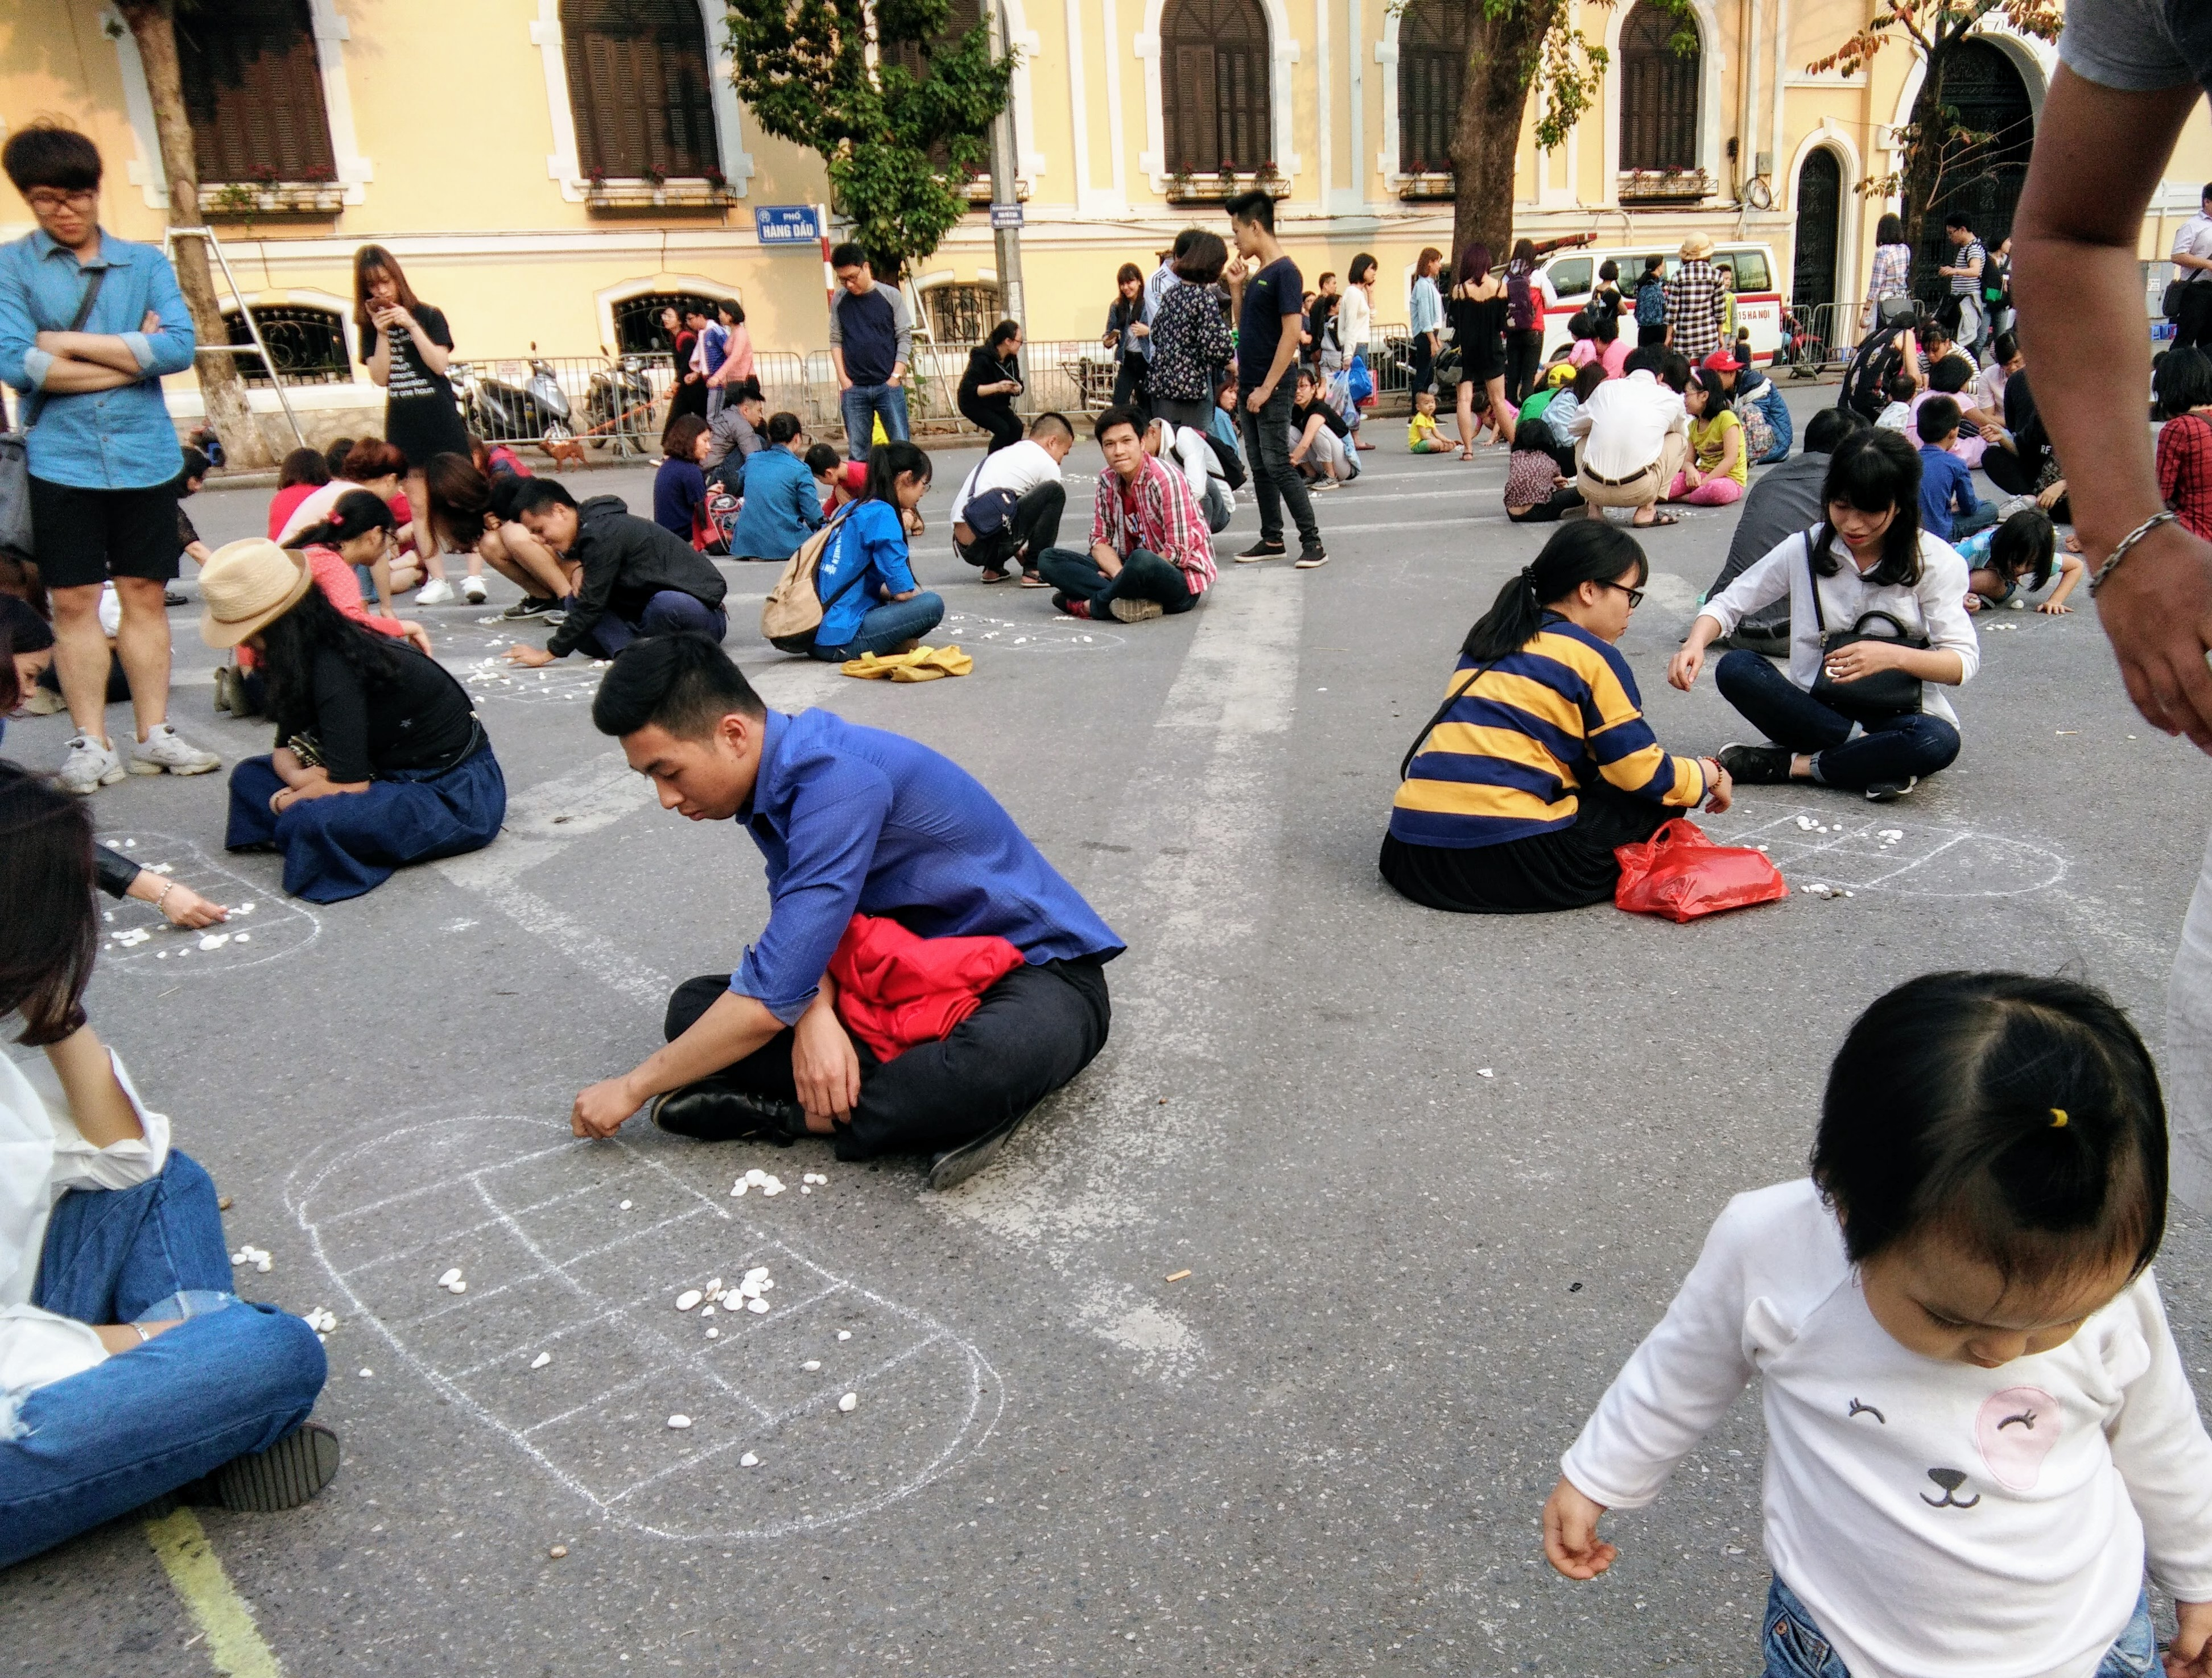 The weekly games around Hoàn Kiếm Lake in Hanoi Vietnam www.knowntoventure.com